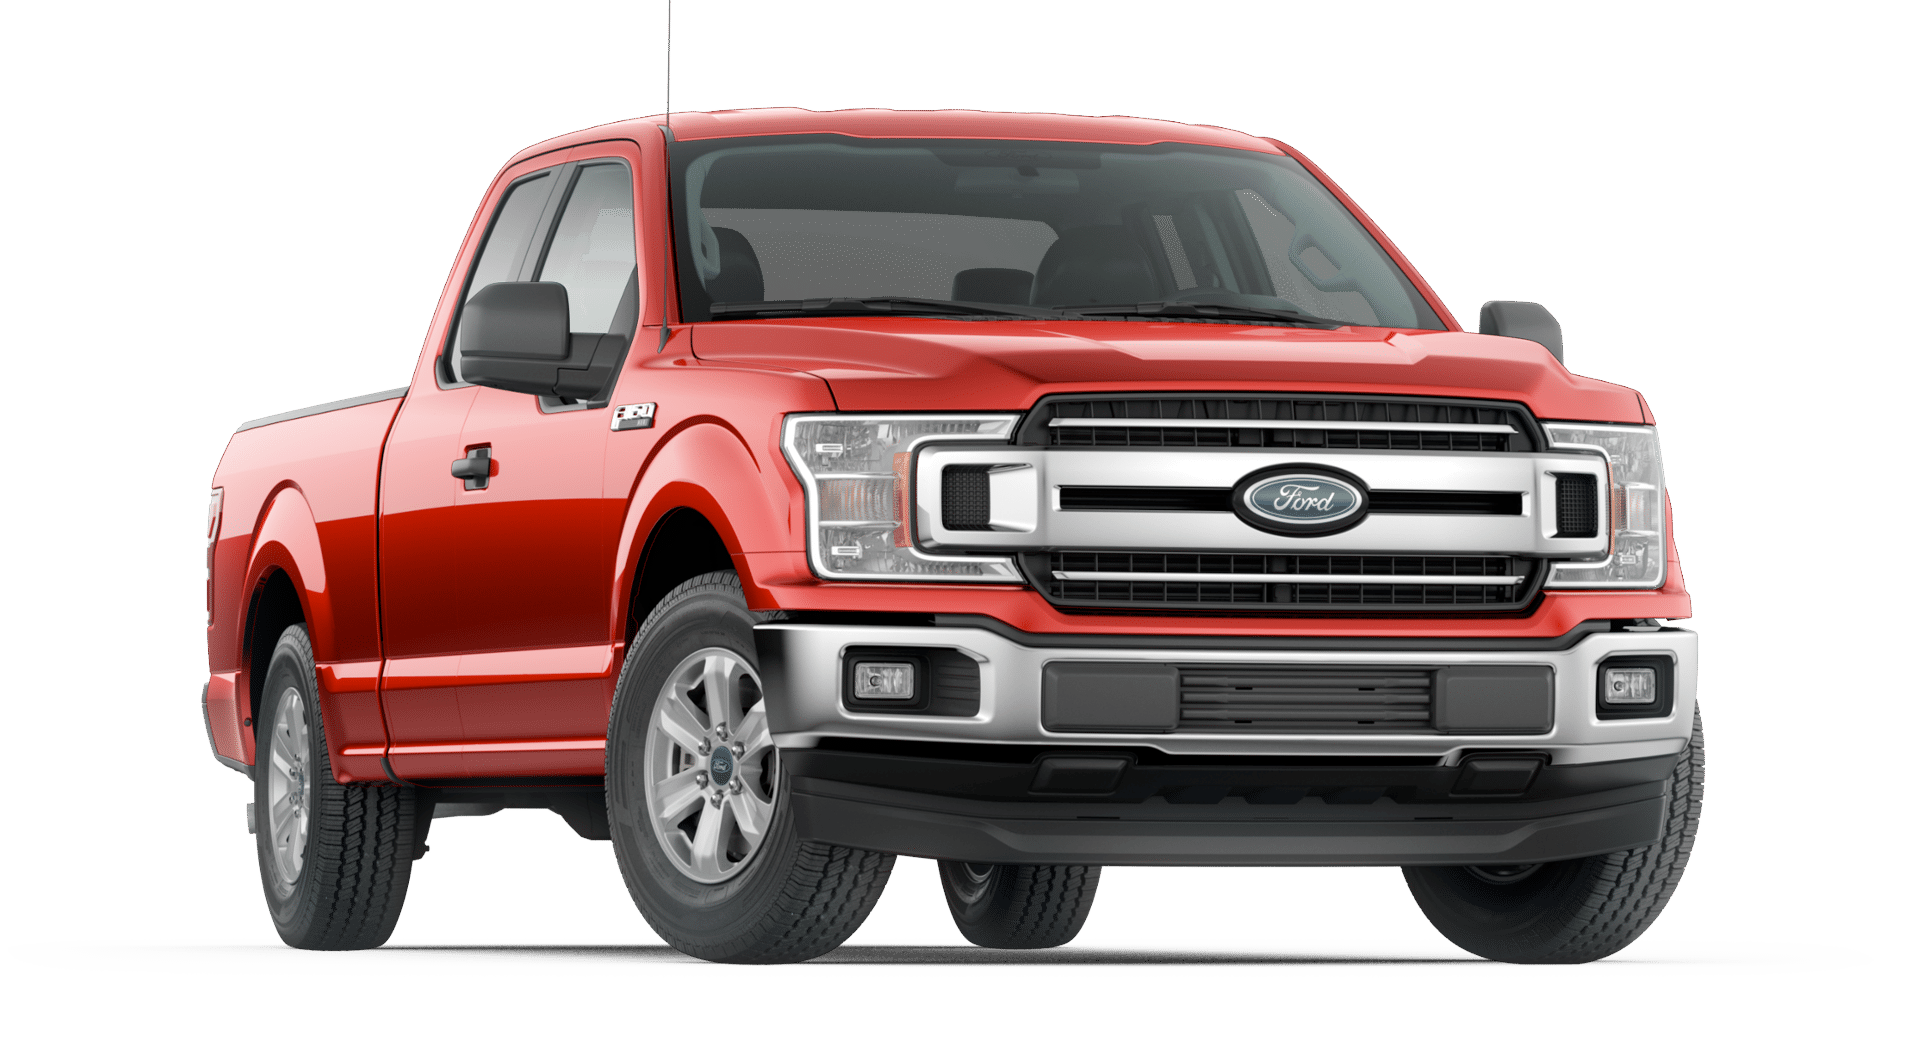 2018 Ford F-150 XLT Supercab 4X4 - Shown